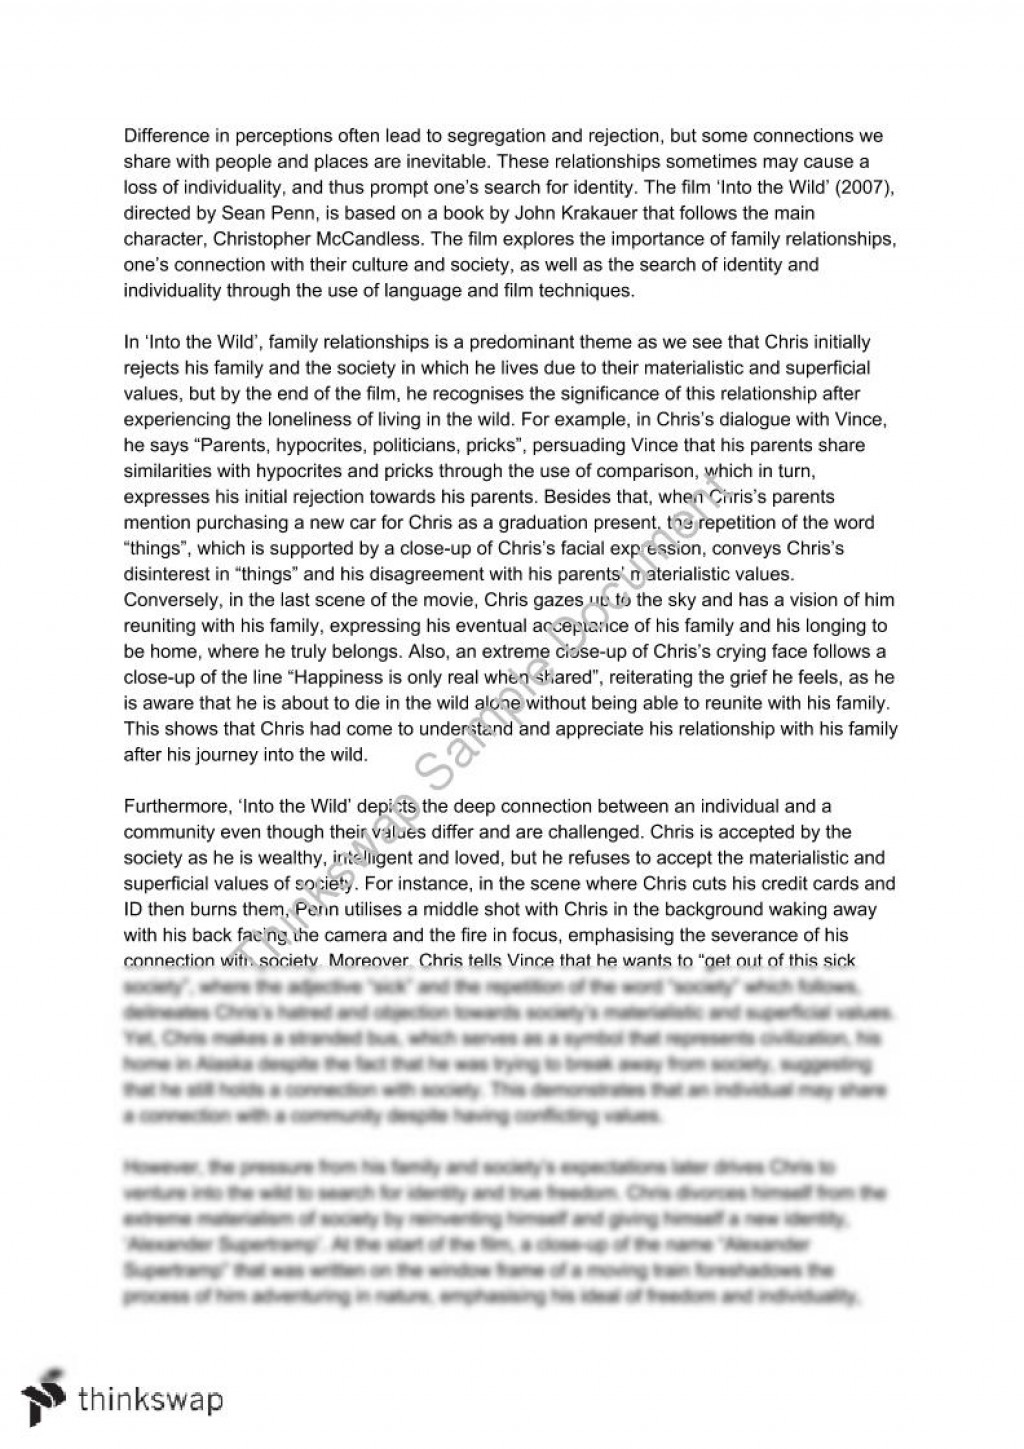 004 Into The Wild Essay Example 76639 Belongingrelatedtextessay Fadded41 Impressive Writing Prompts Titles Discussion Questions Chapter 2 Large